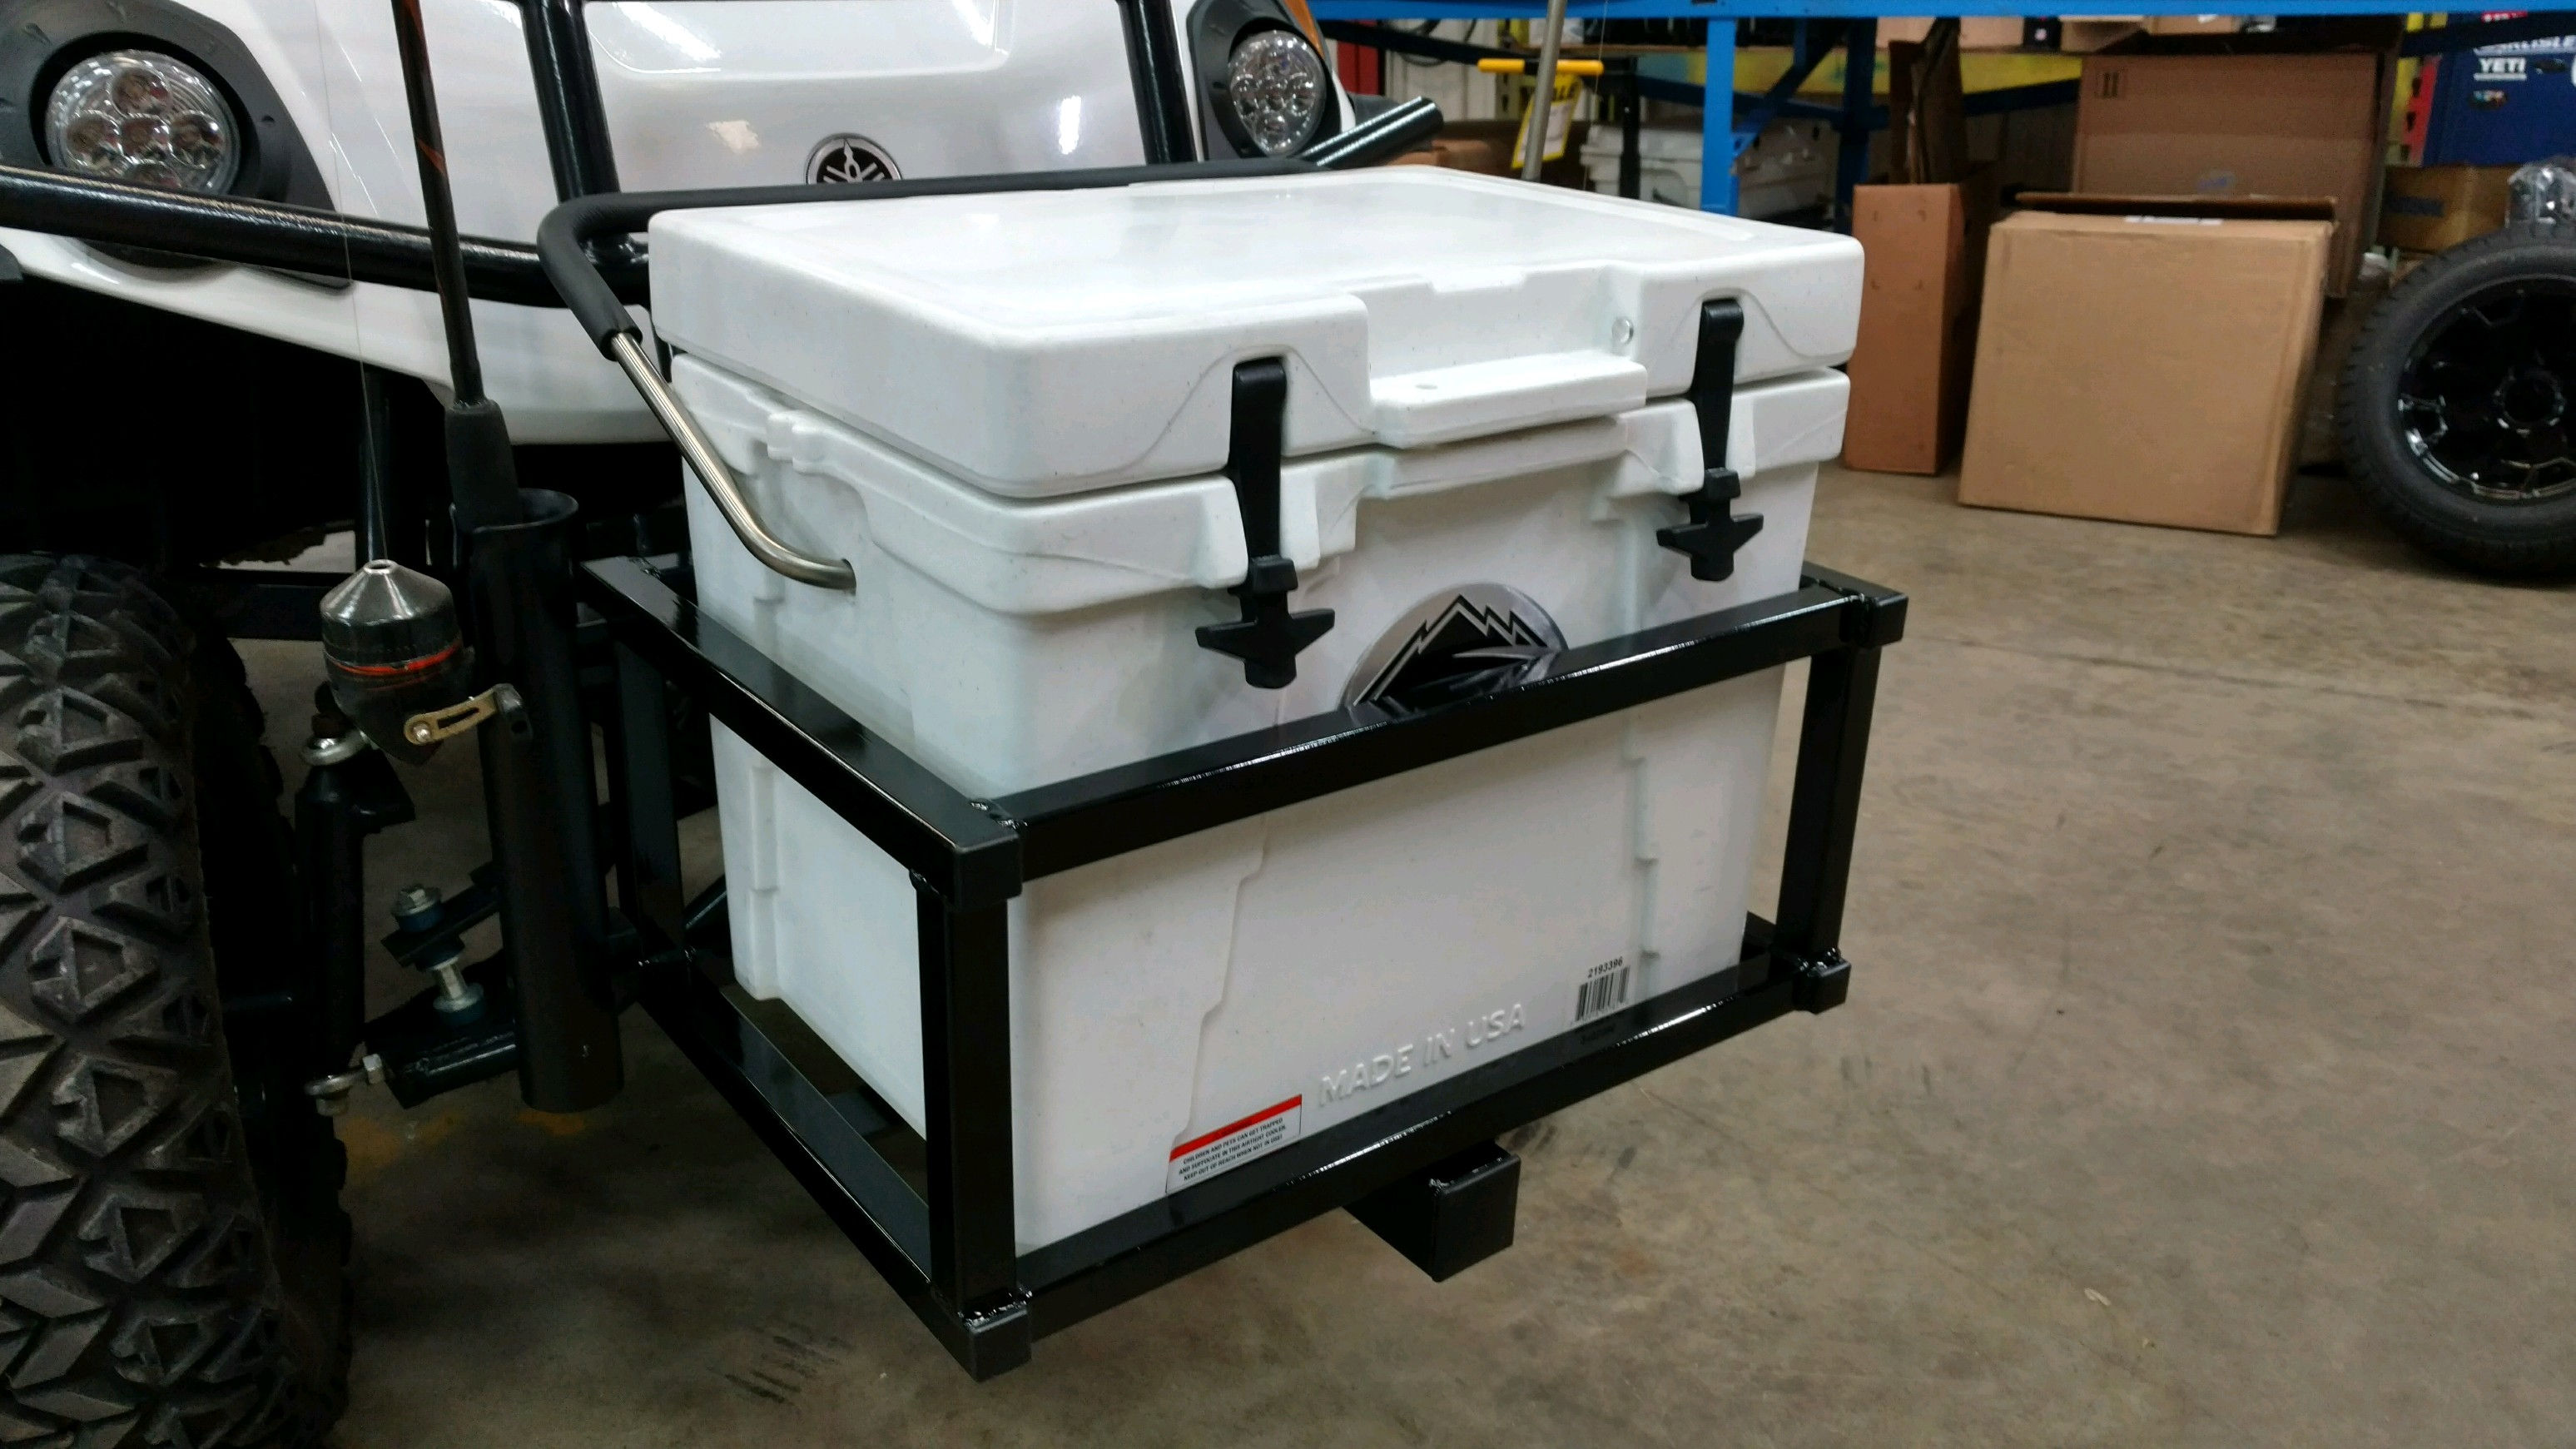 Sub Z Hard Chest (23 qt) Cooler Carrier